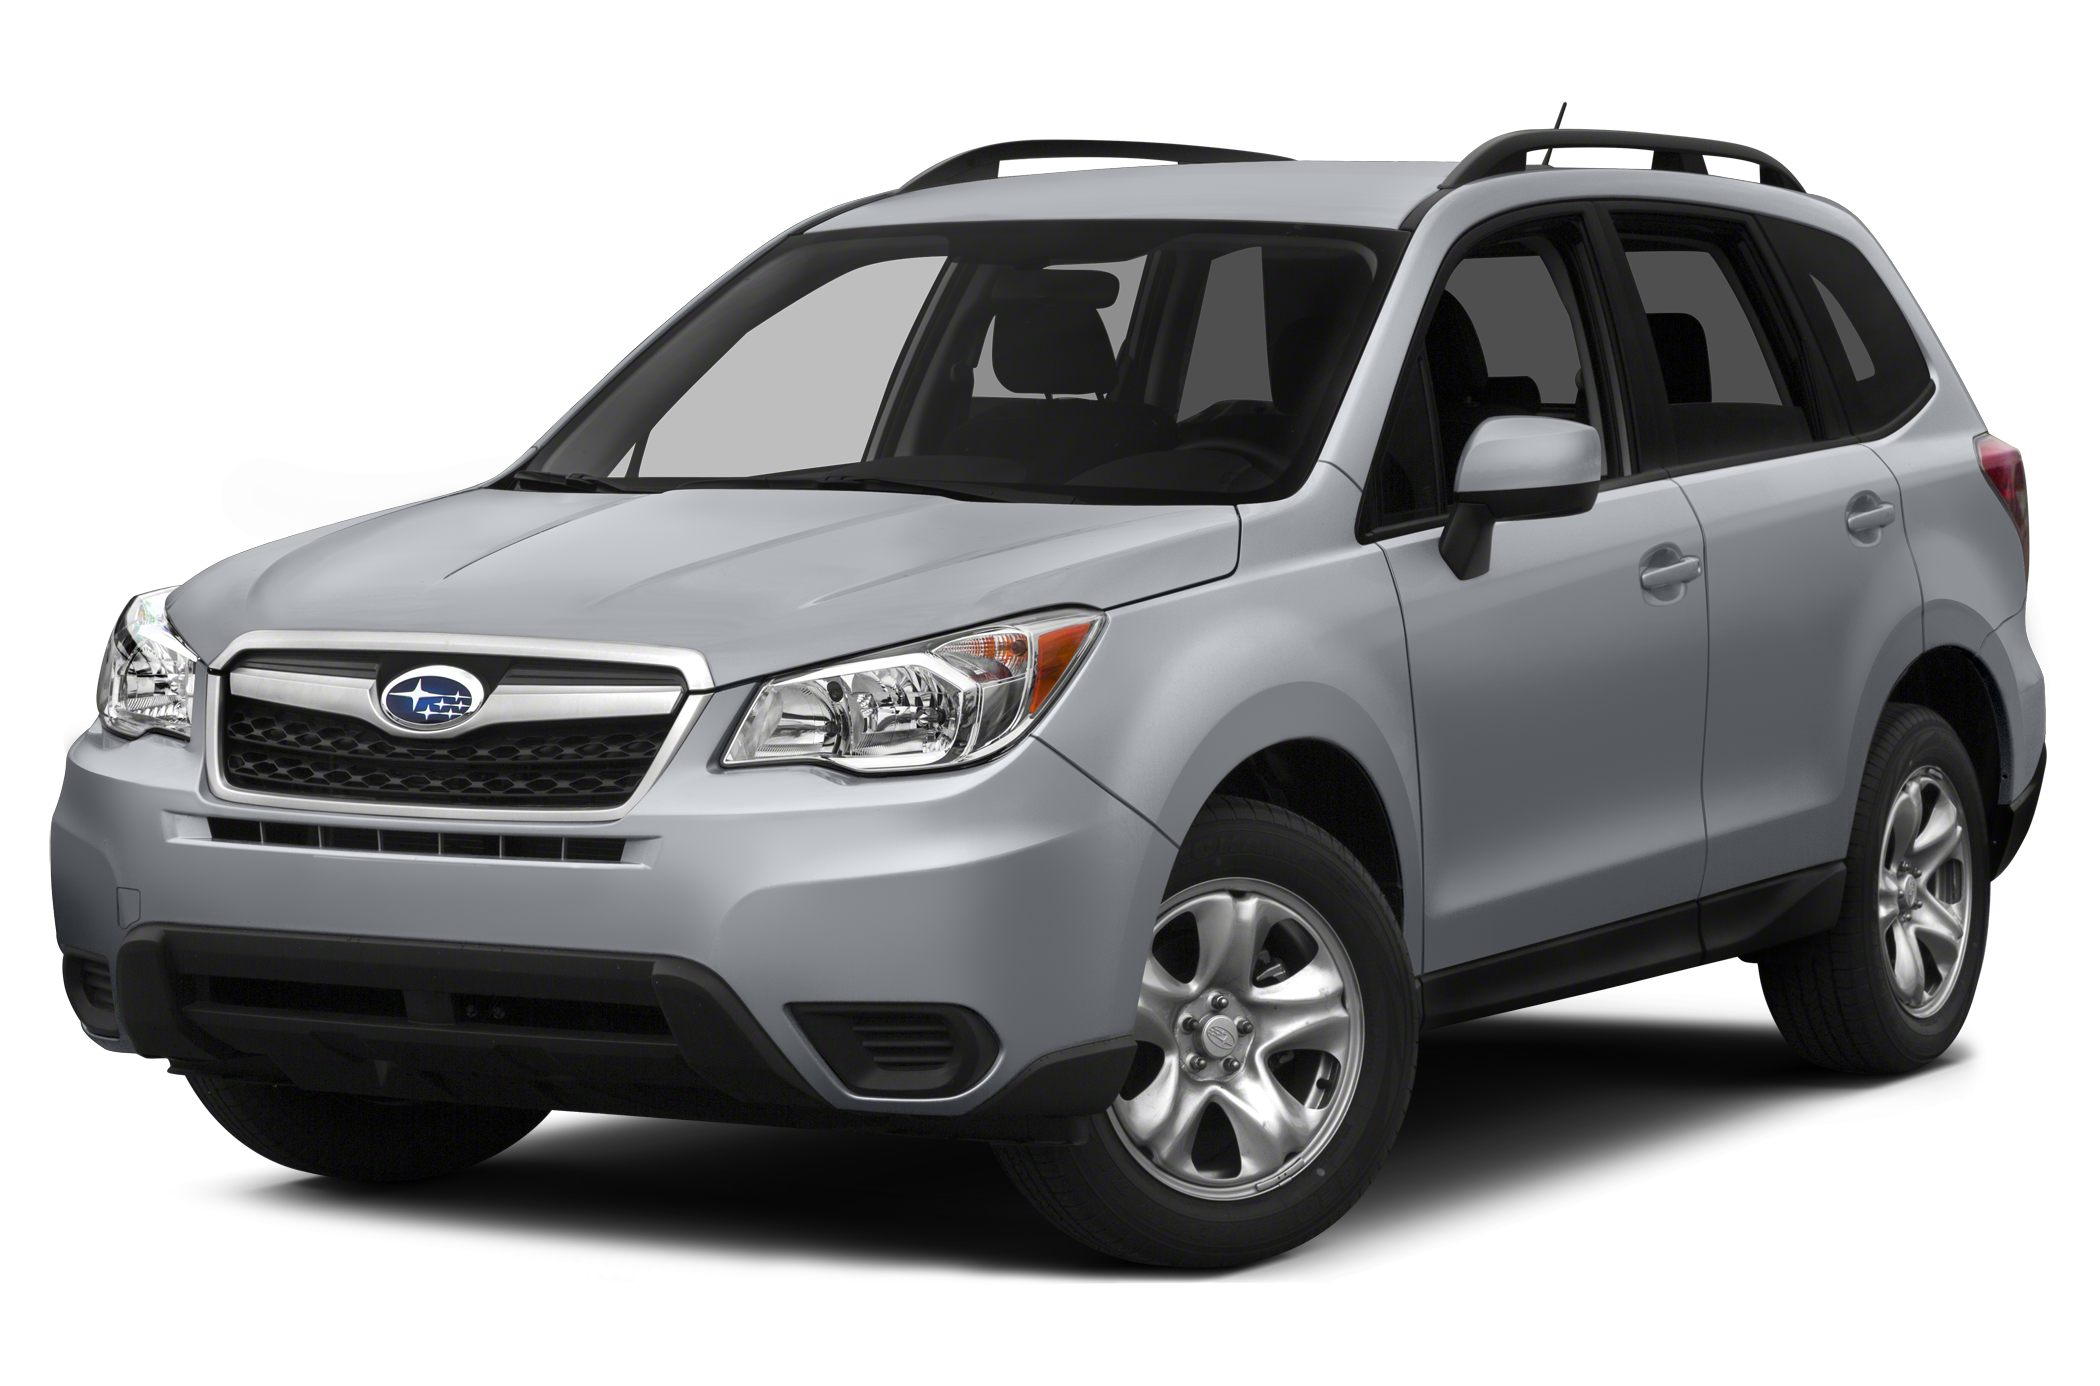 2015 Subaru Forester 2.5i Premium SUV for sale in Allentown for $26,783 with 1 miles